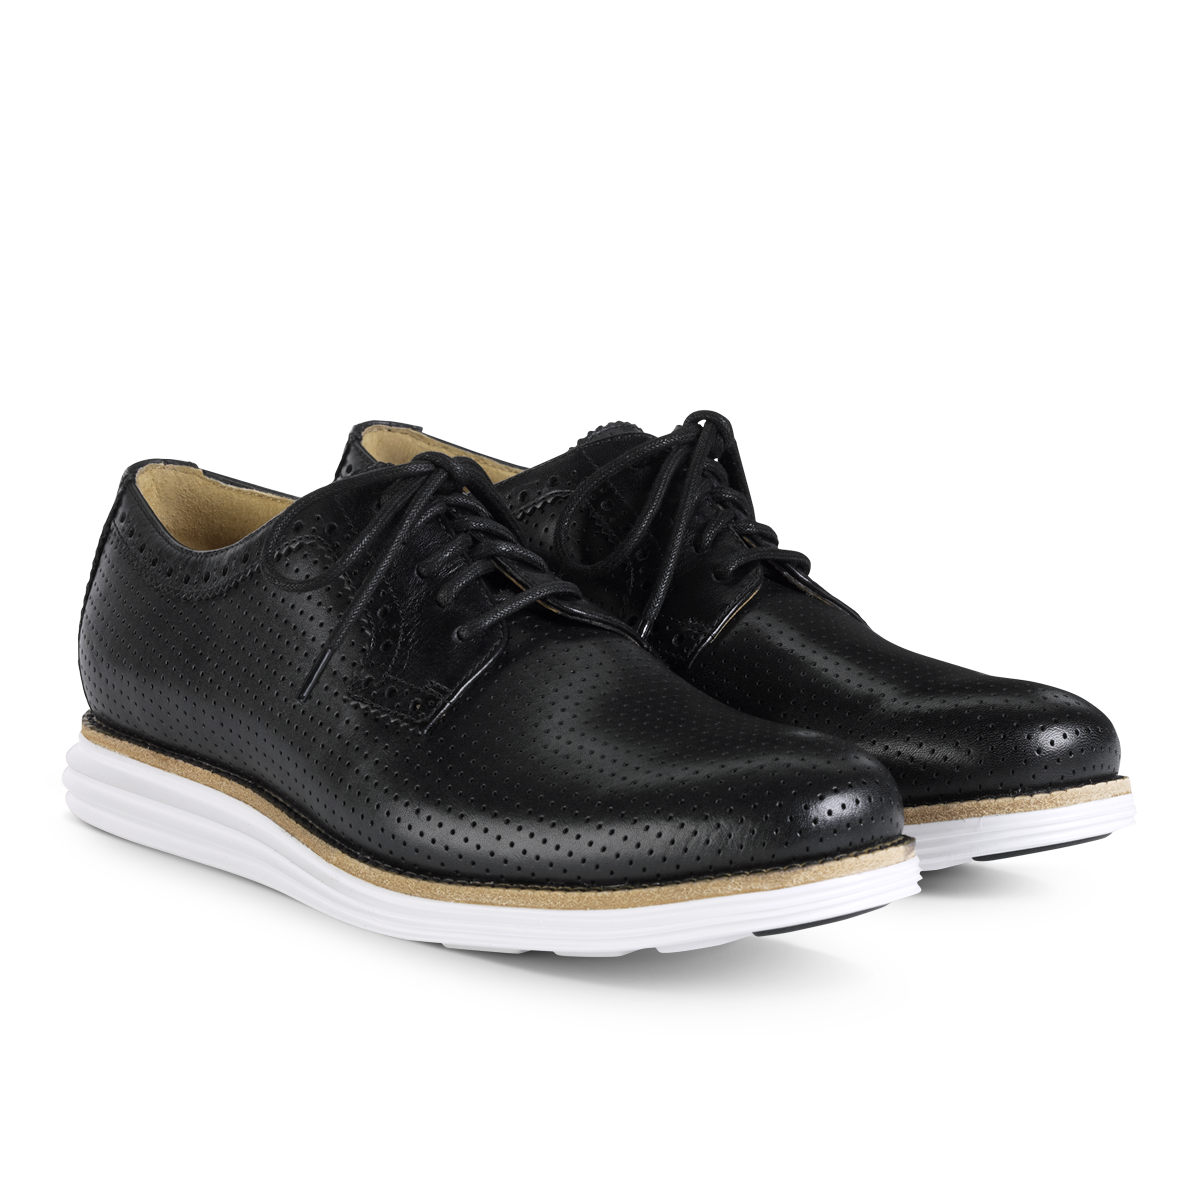 Cole Haan LunarGrand Perforated Plain Toe in Black